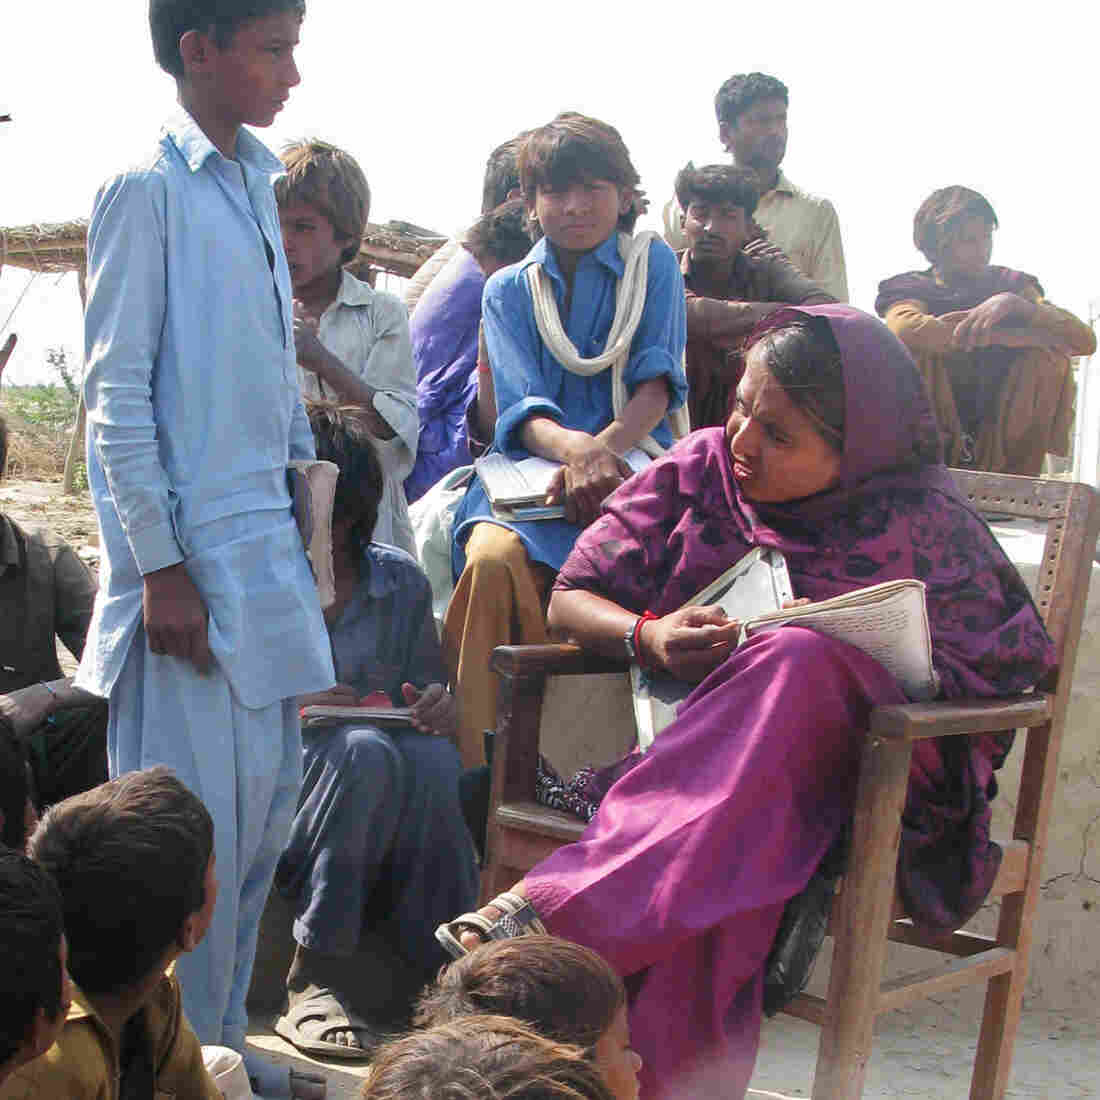 In Pakistan, A Self-Styled Teacher Holds Class For 150 In A Cowshed